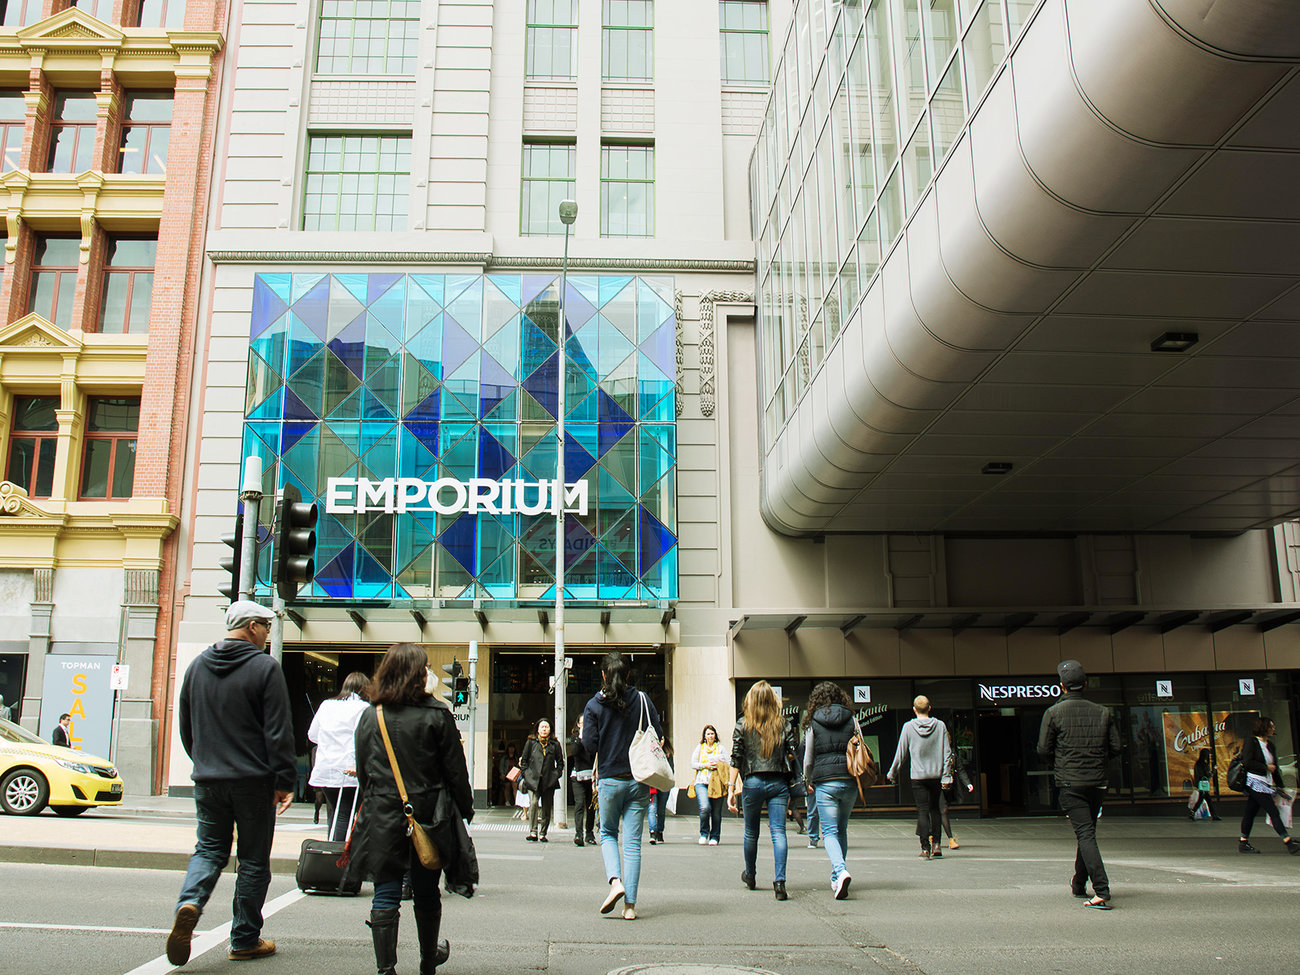 Emporium Melbourne Shopping Mall